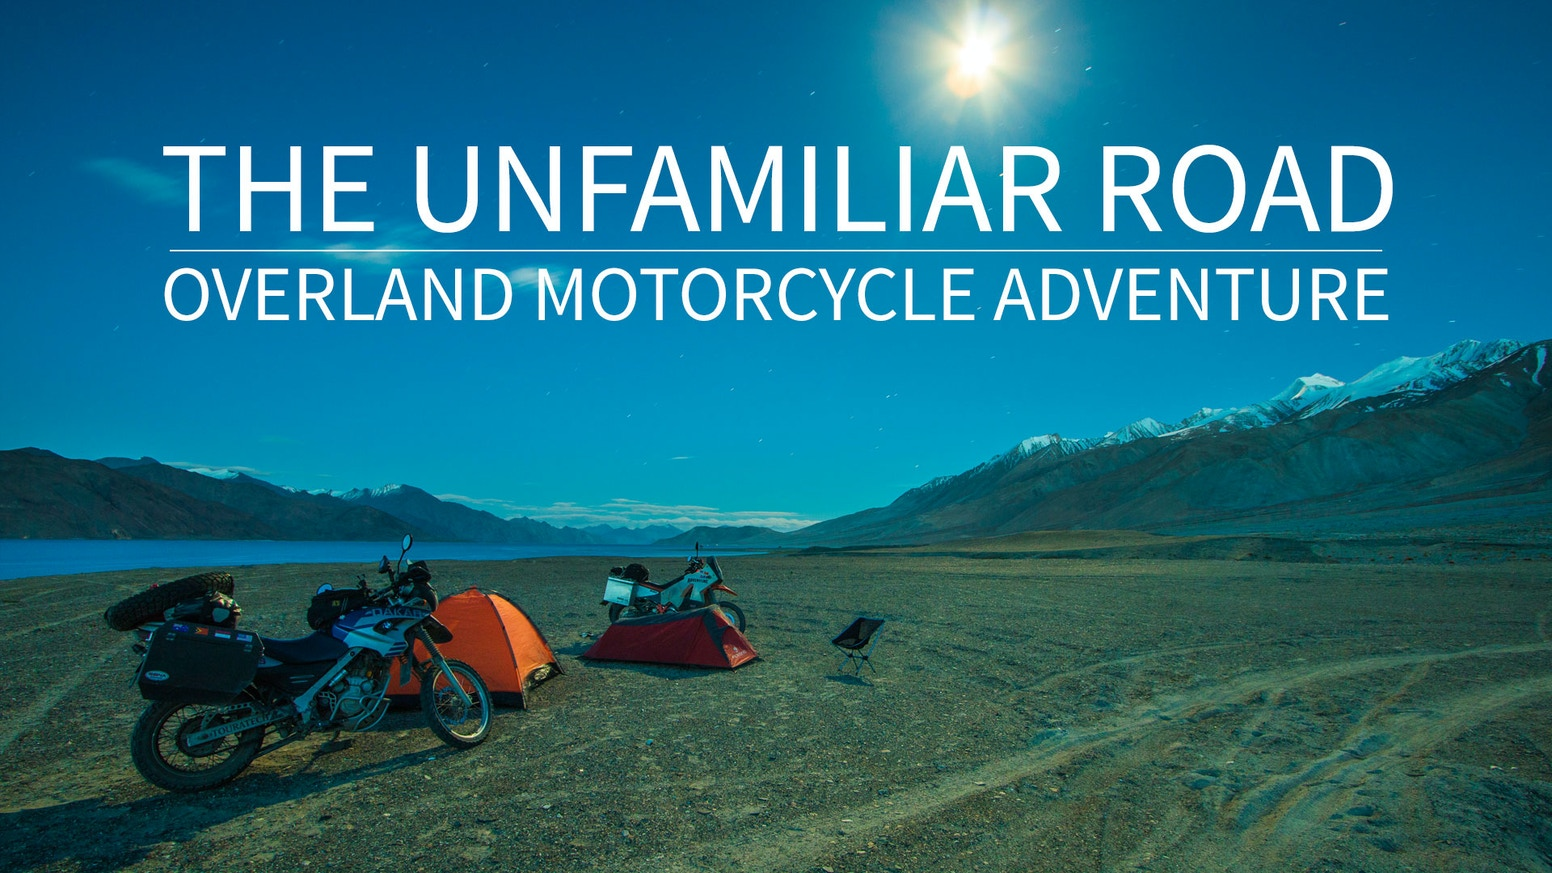 An independent feature length documentary film following the overland journey from Australia to London on a motorcycle.